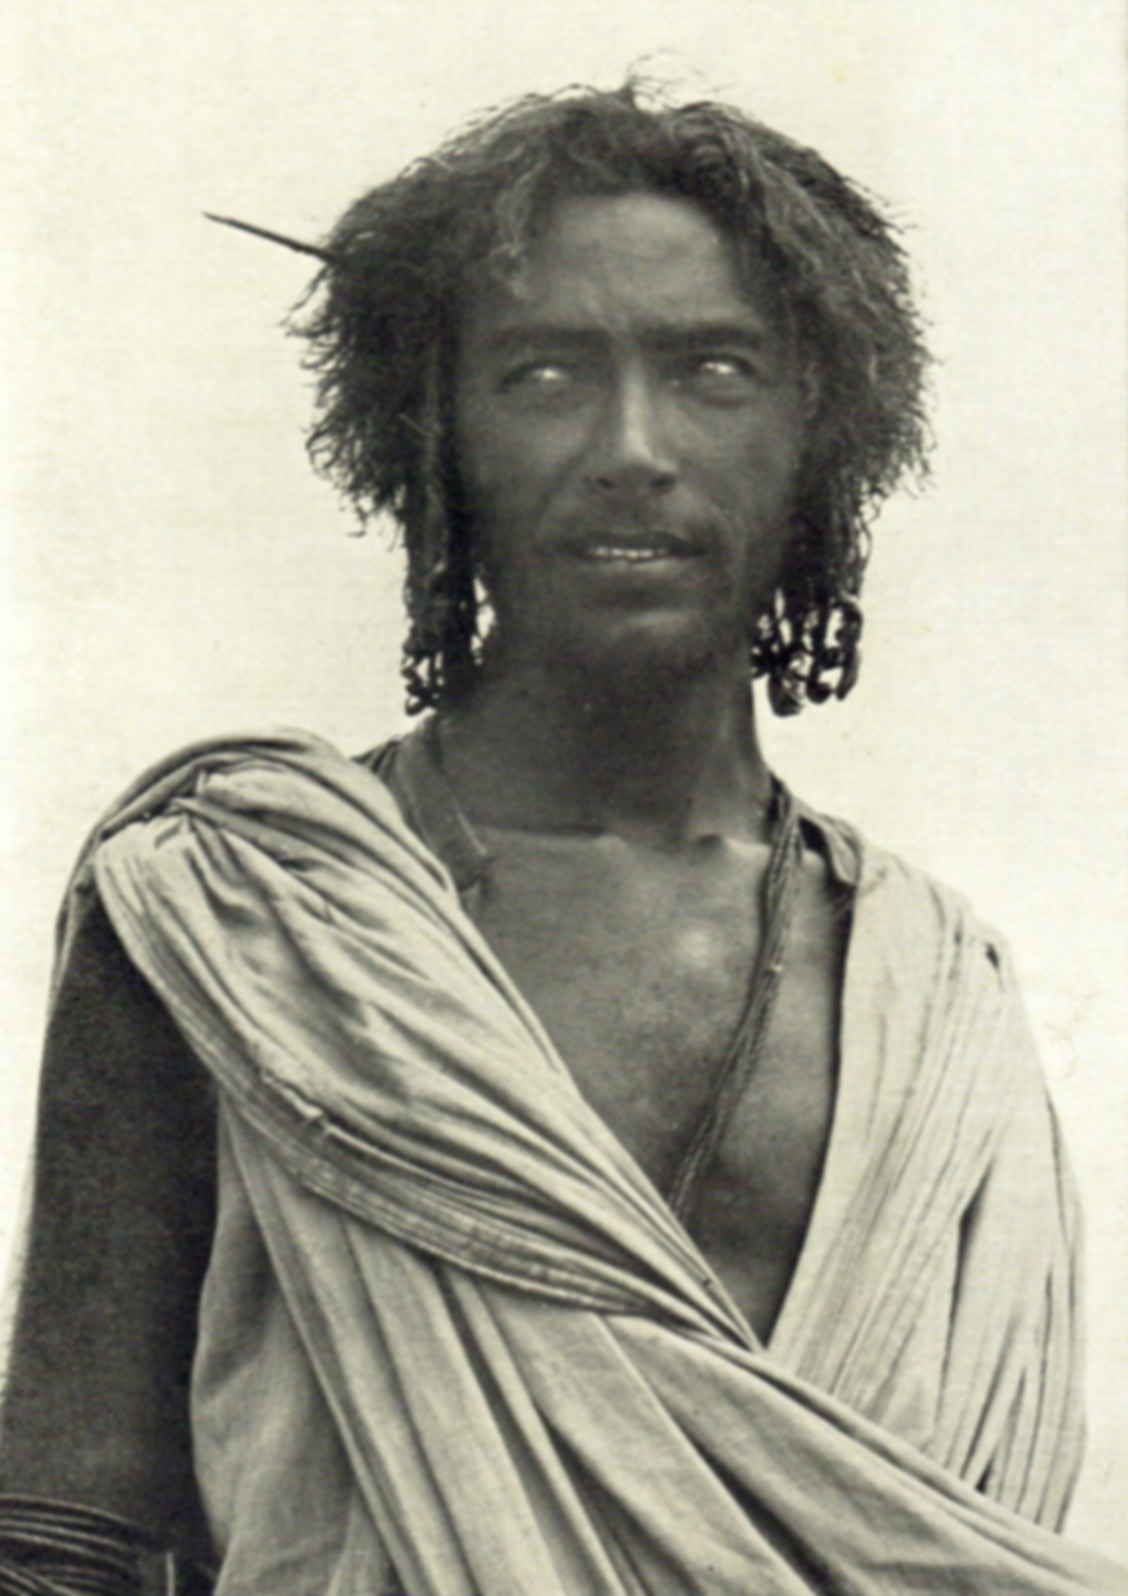 https://upload.wikimedia.org/wikipedia/commons/3/3f/An_Afar_nomad.jpg